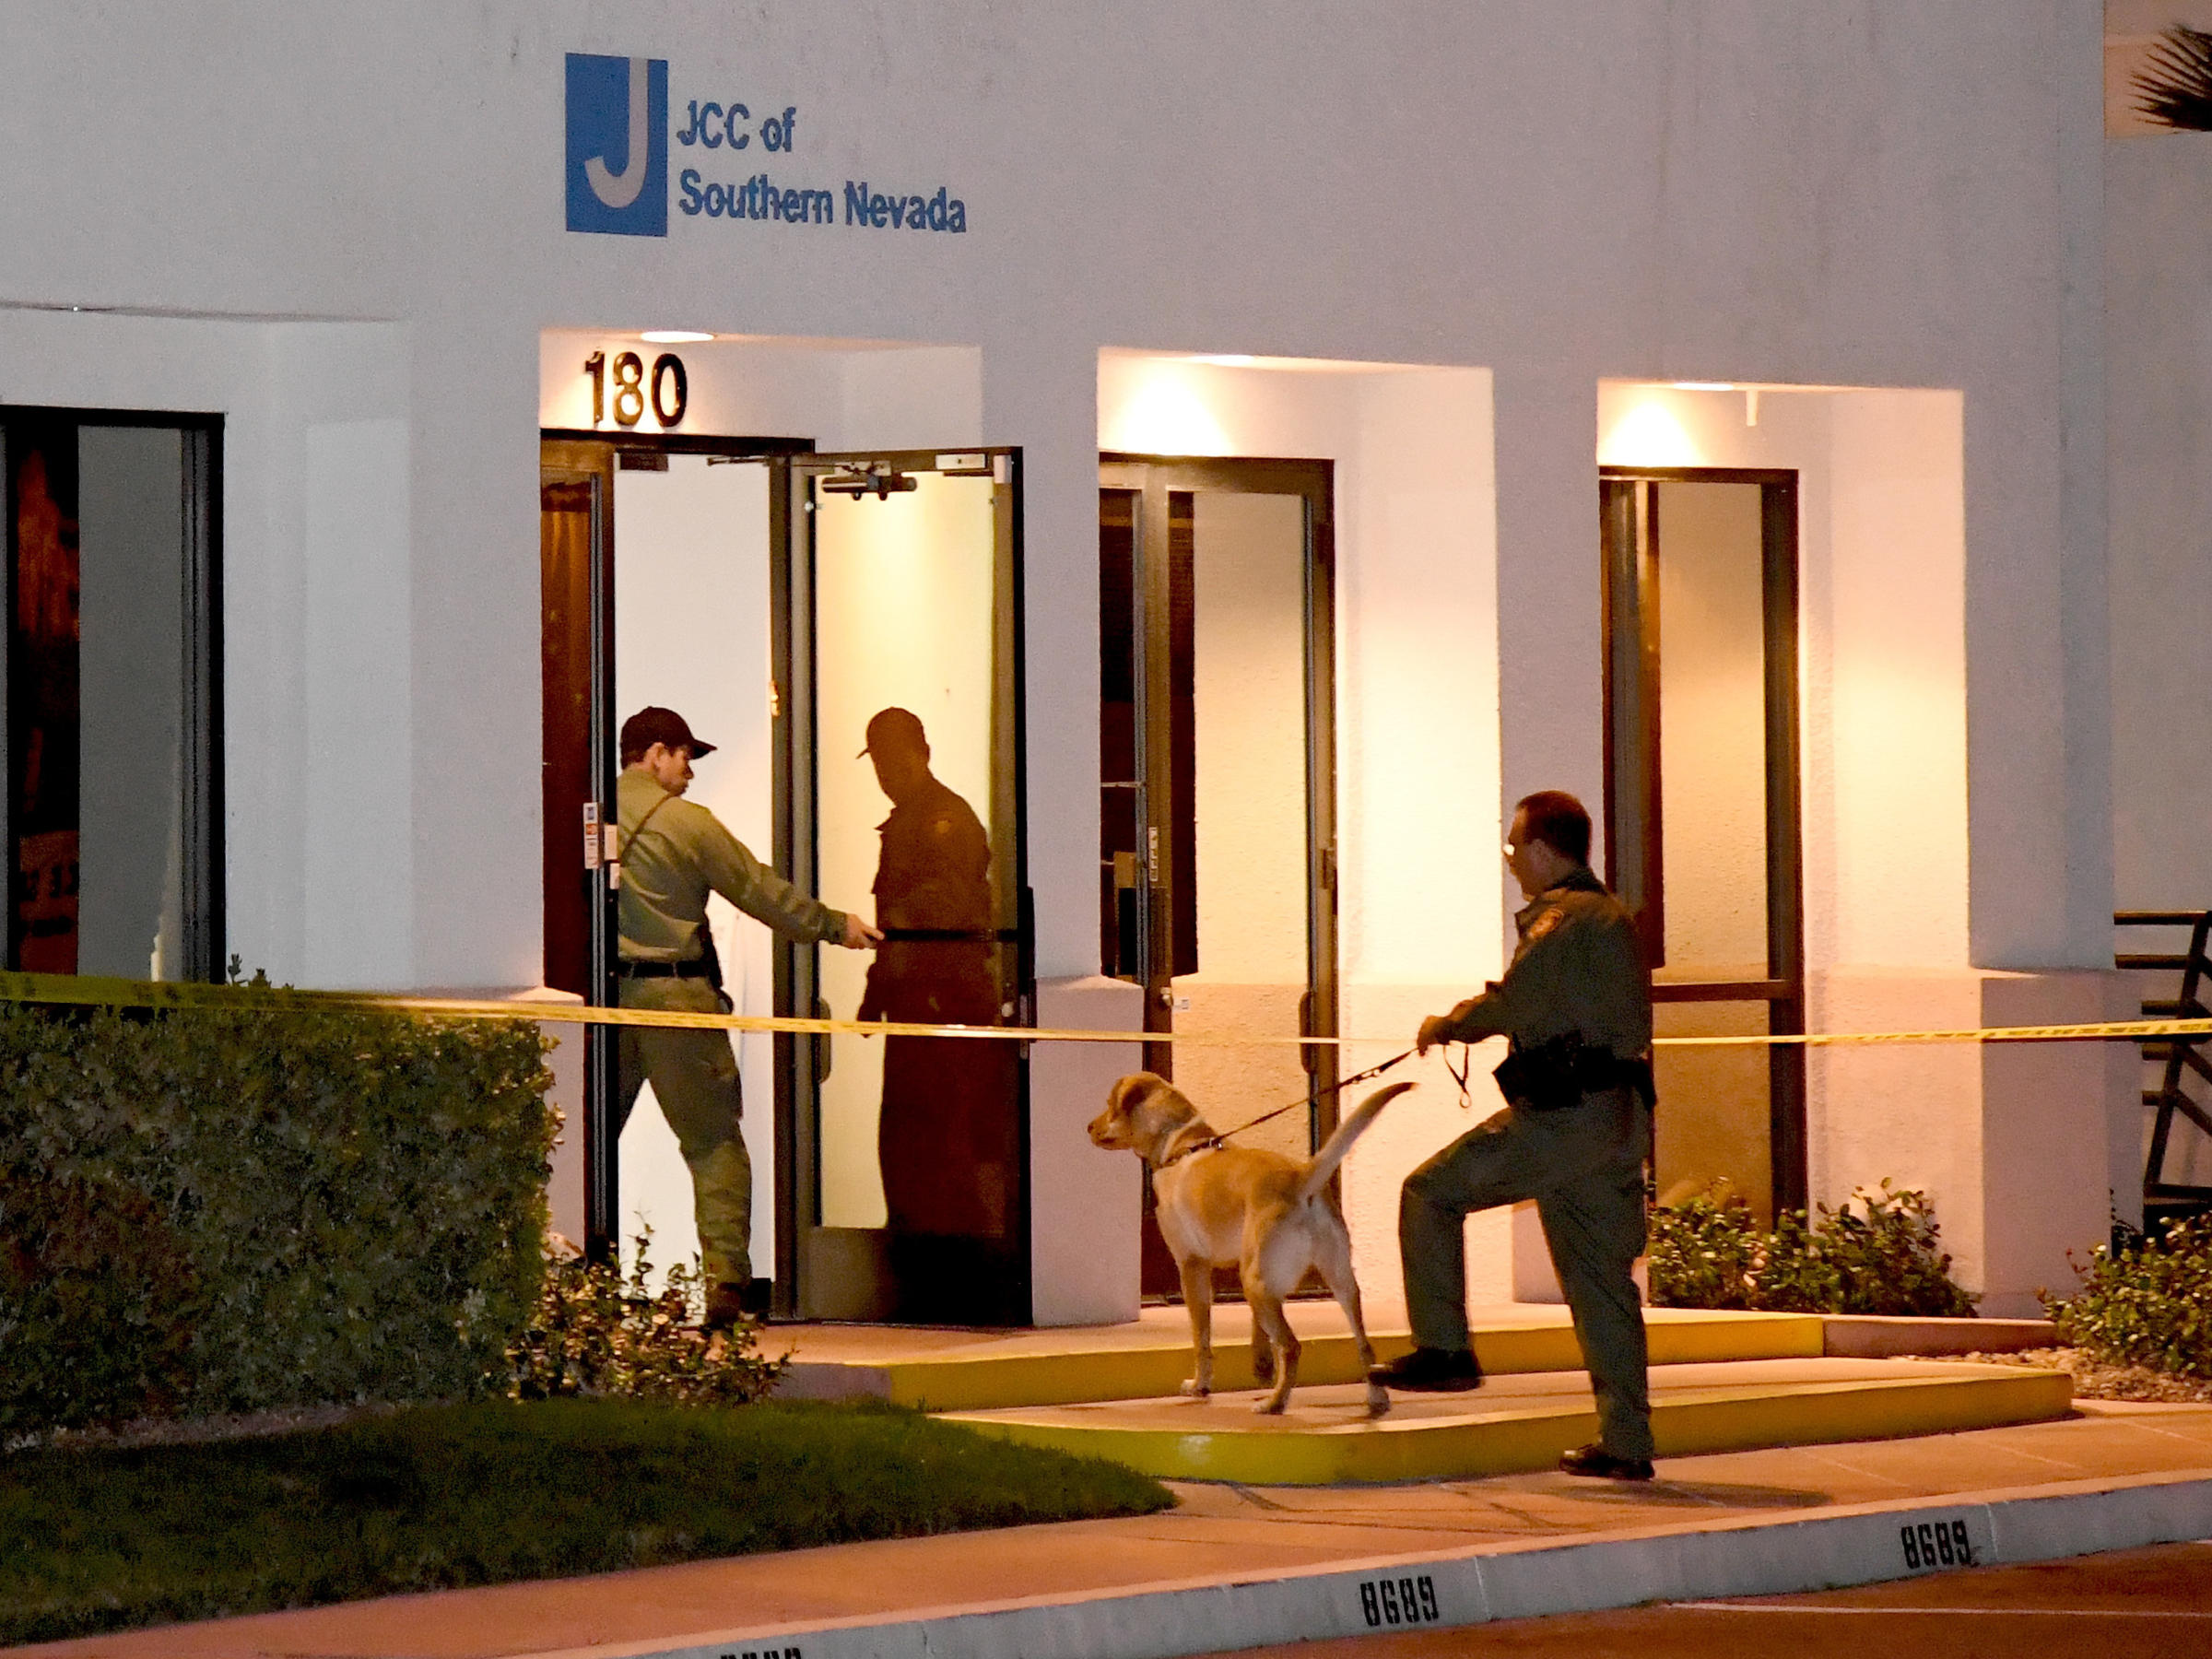 Israeli American Jew Arrested For Jewish Community Center Bomb Threats